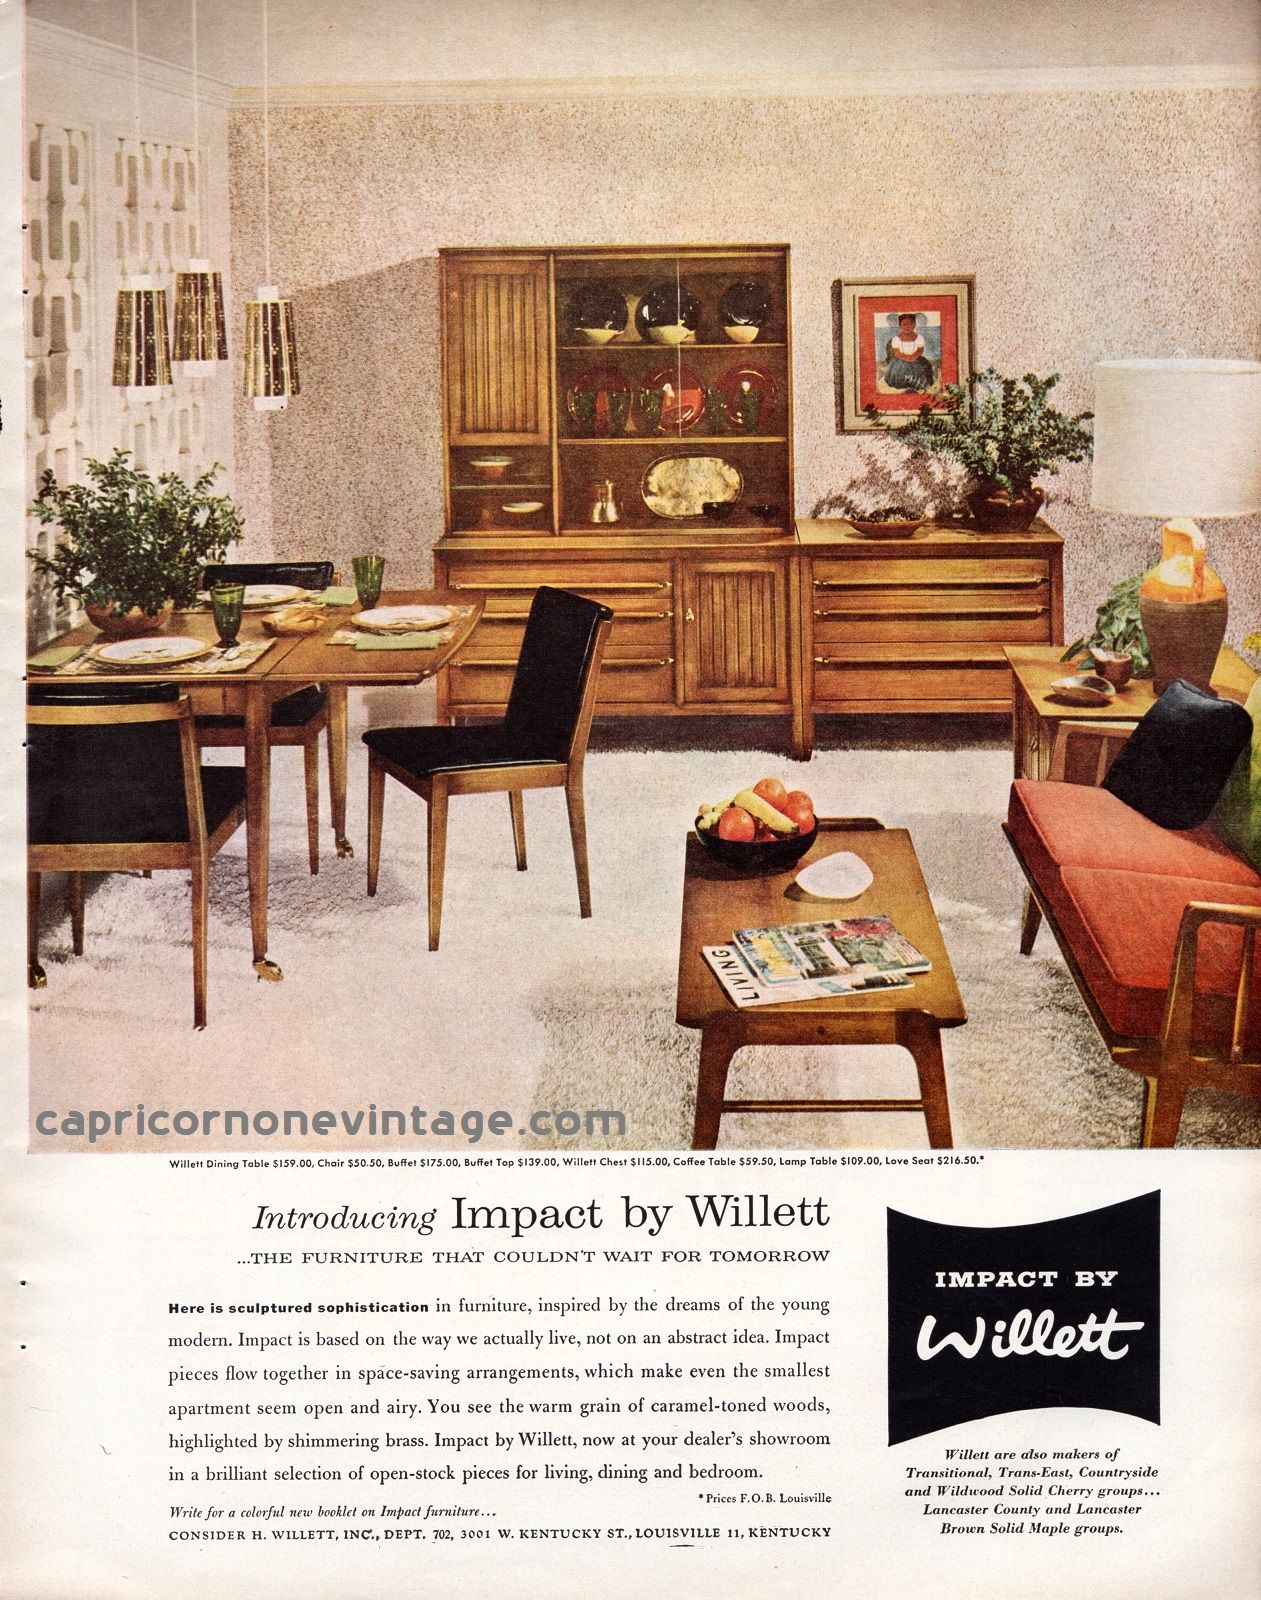 1957 impact by willett furniture magazine ad mid century modern furnishings retro room decor 1950s vintage advertising